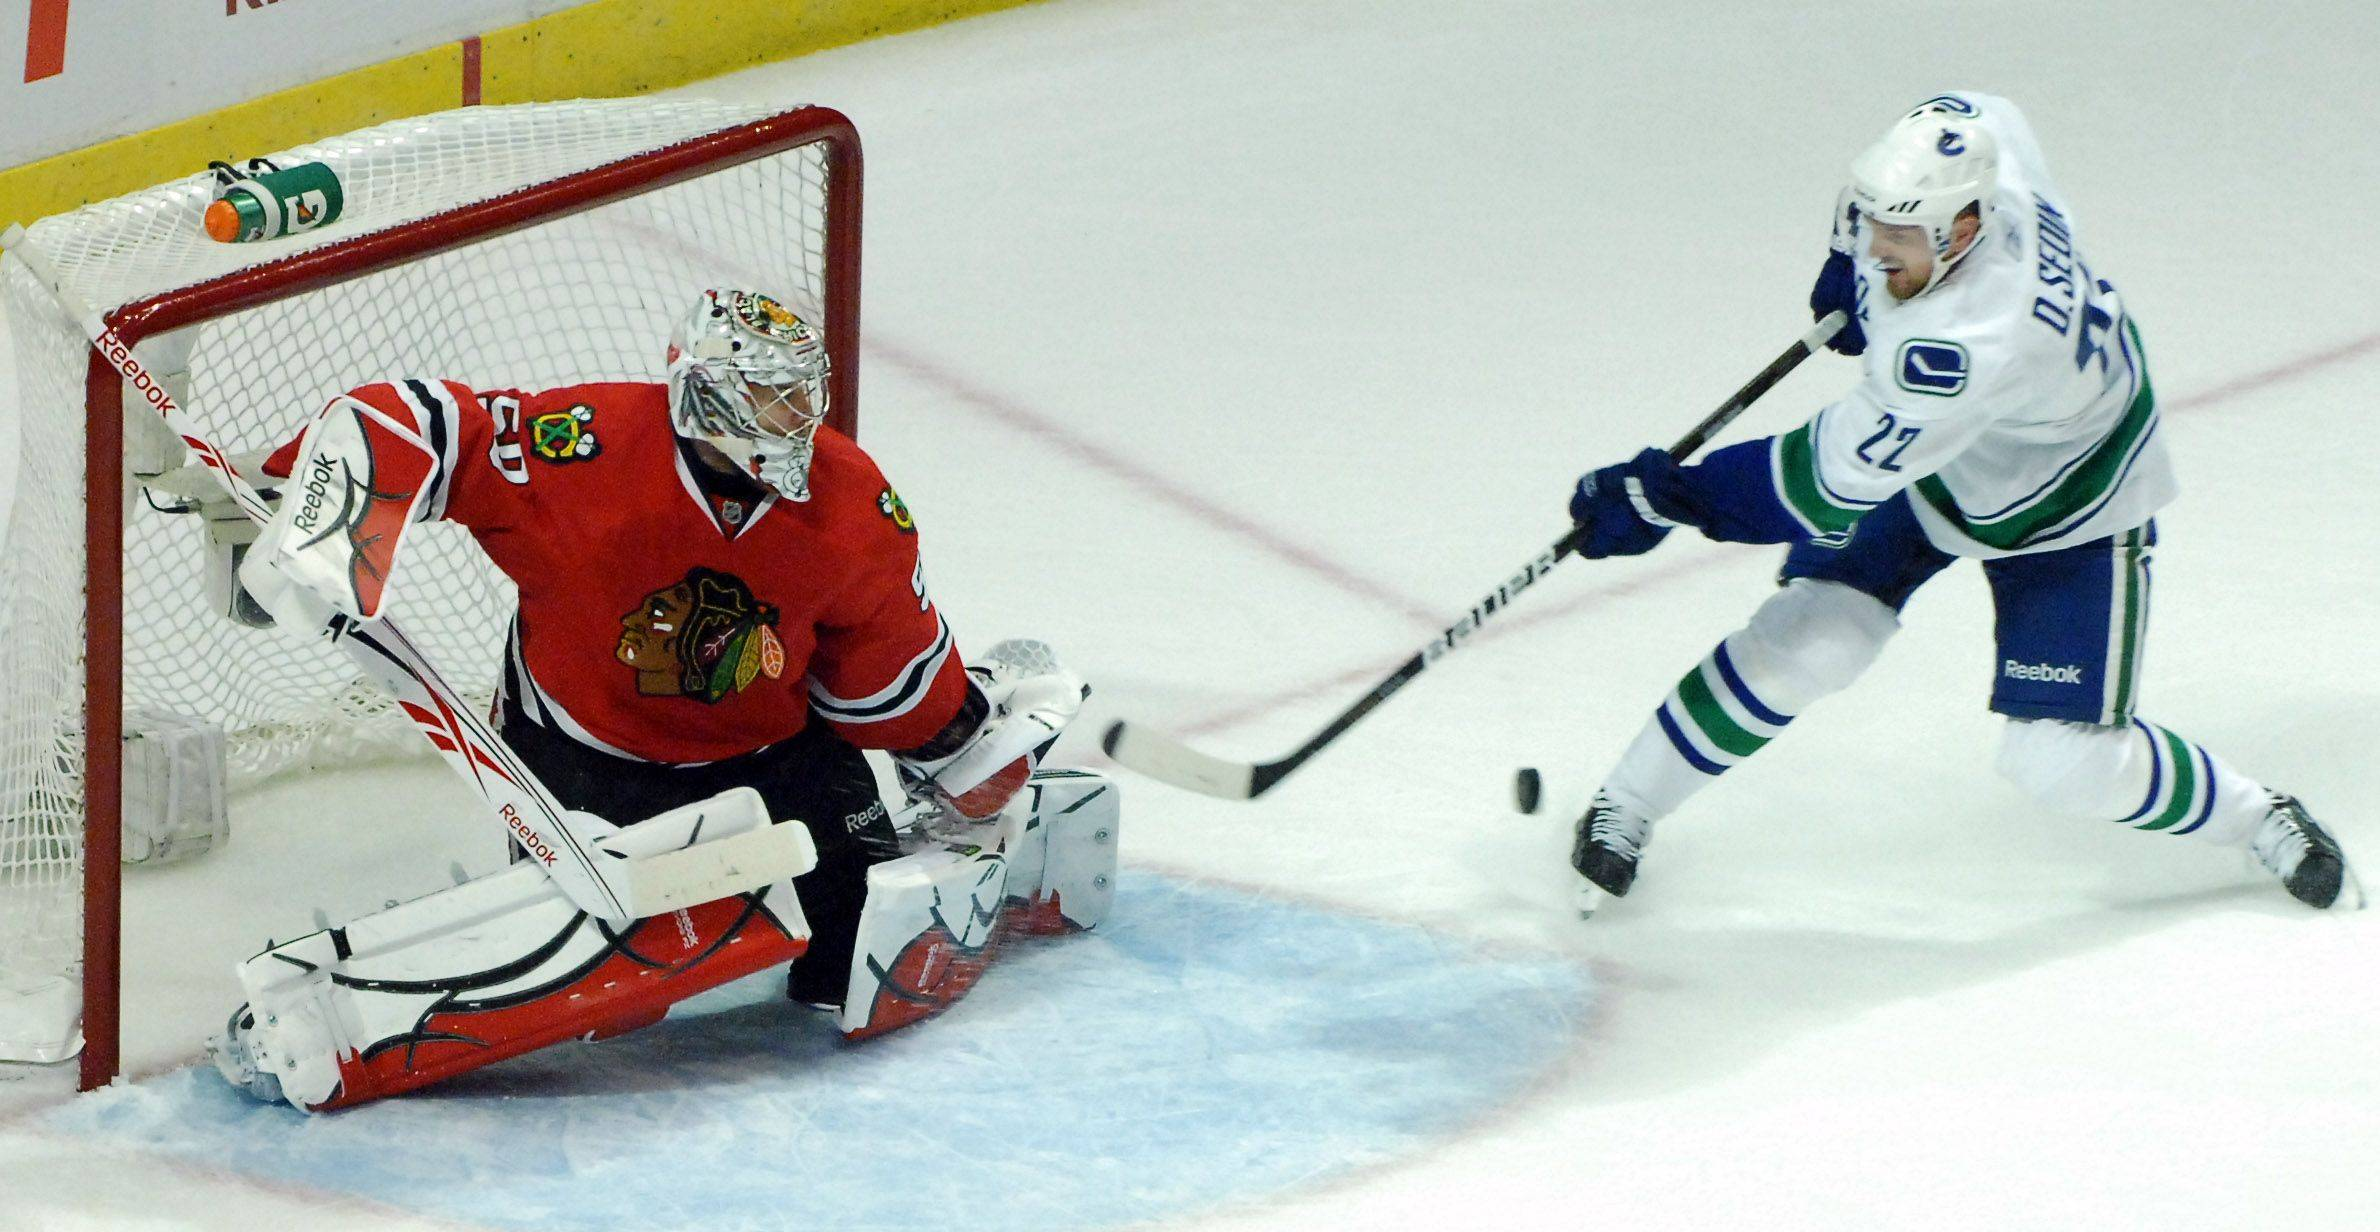 Chicago Blackhawks goalie Corey Crawford makes a save on a shot by Vancouver Canucks left wing Daniel Sedin in the second period.